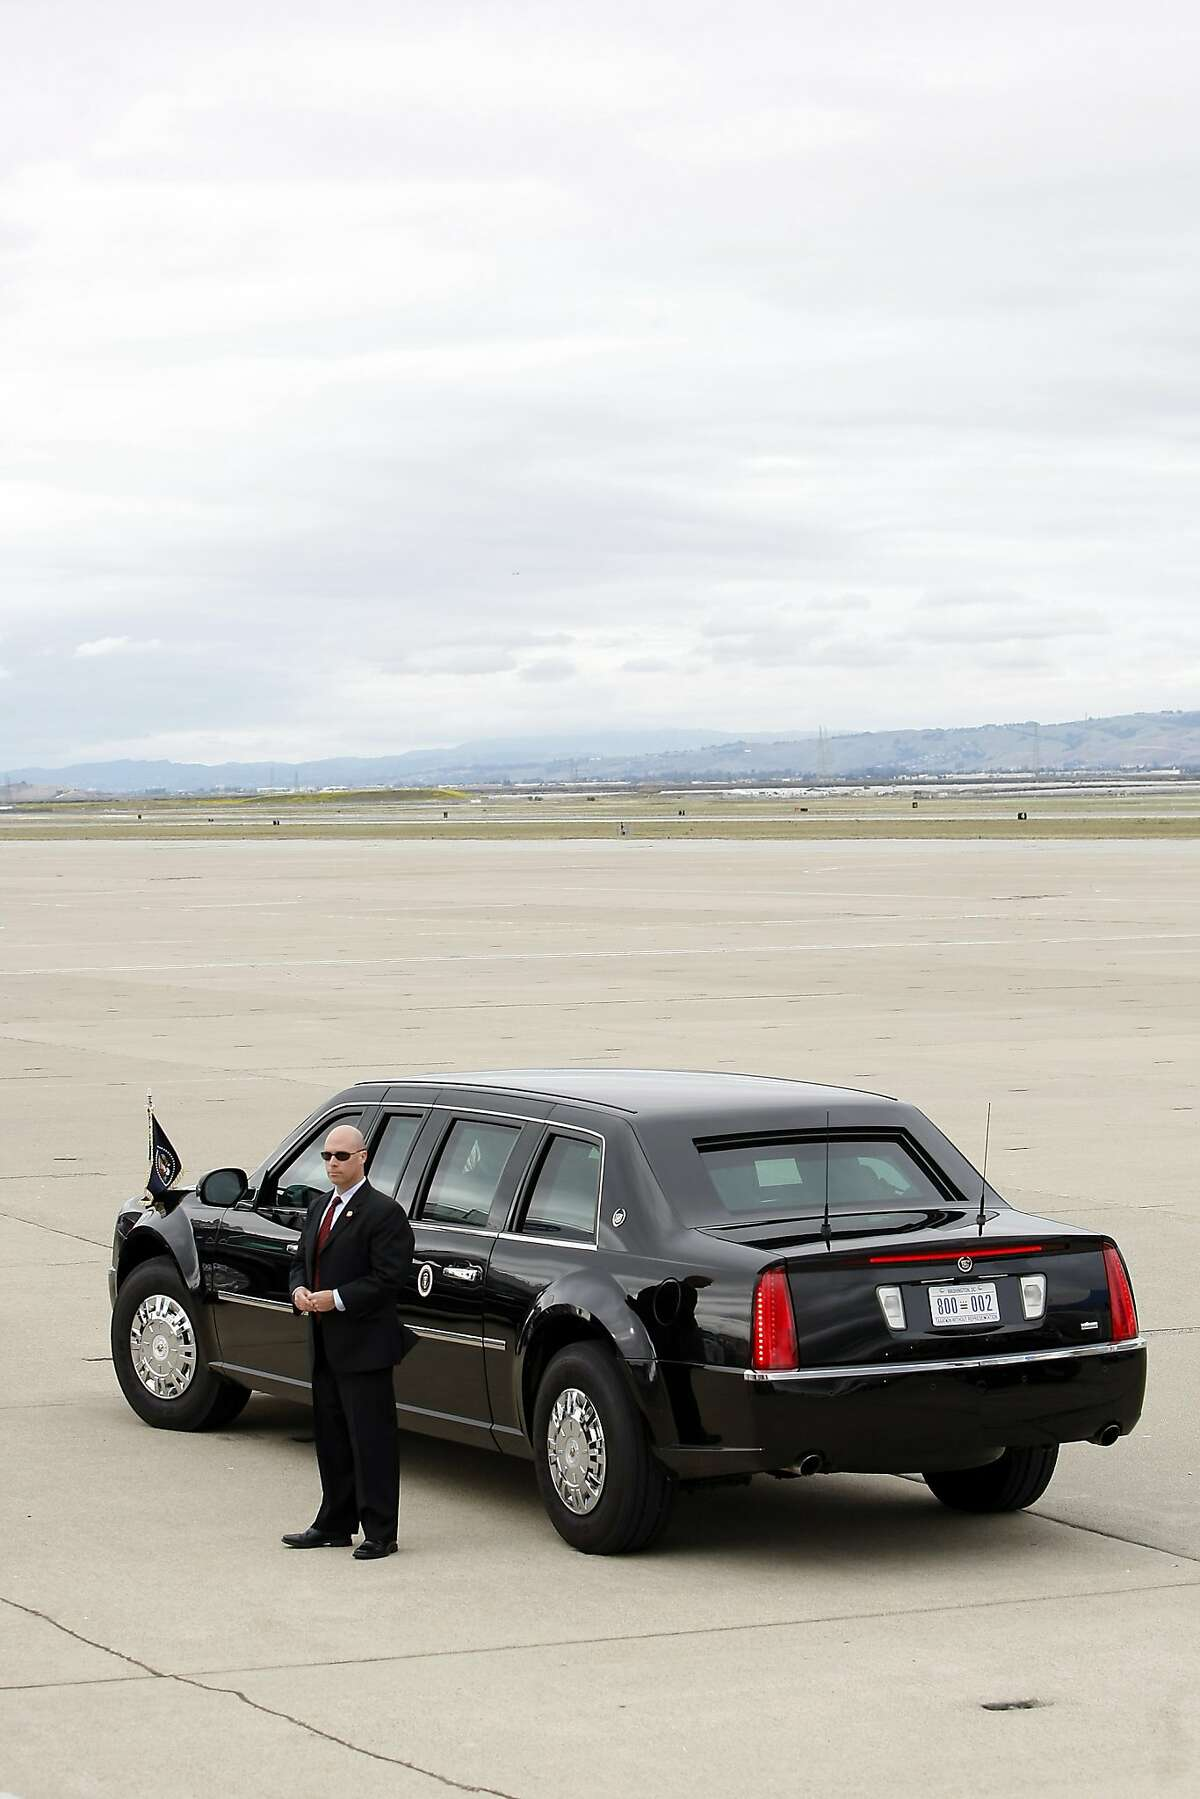 US President Barack Obama's limousine sits on the tarmac after his arrival at Moffett Federal Airfield in Mountain View, CA, Thursday May 8, 2014. President Obama is in the South Bay for a DNC roundtable and reception and is also speaking on the topic of energy efficiency at a local Walmart.